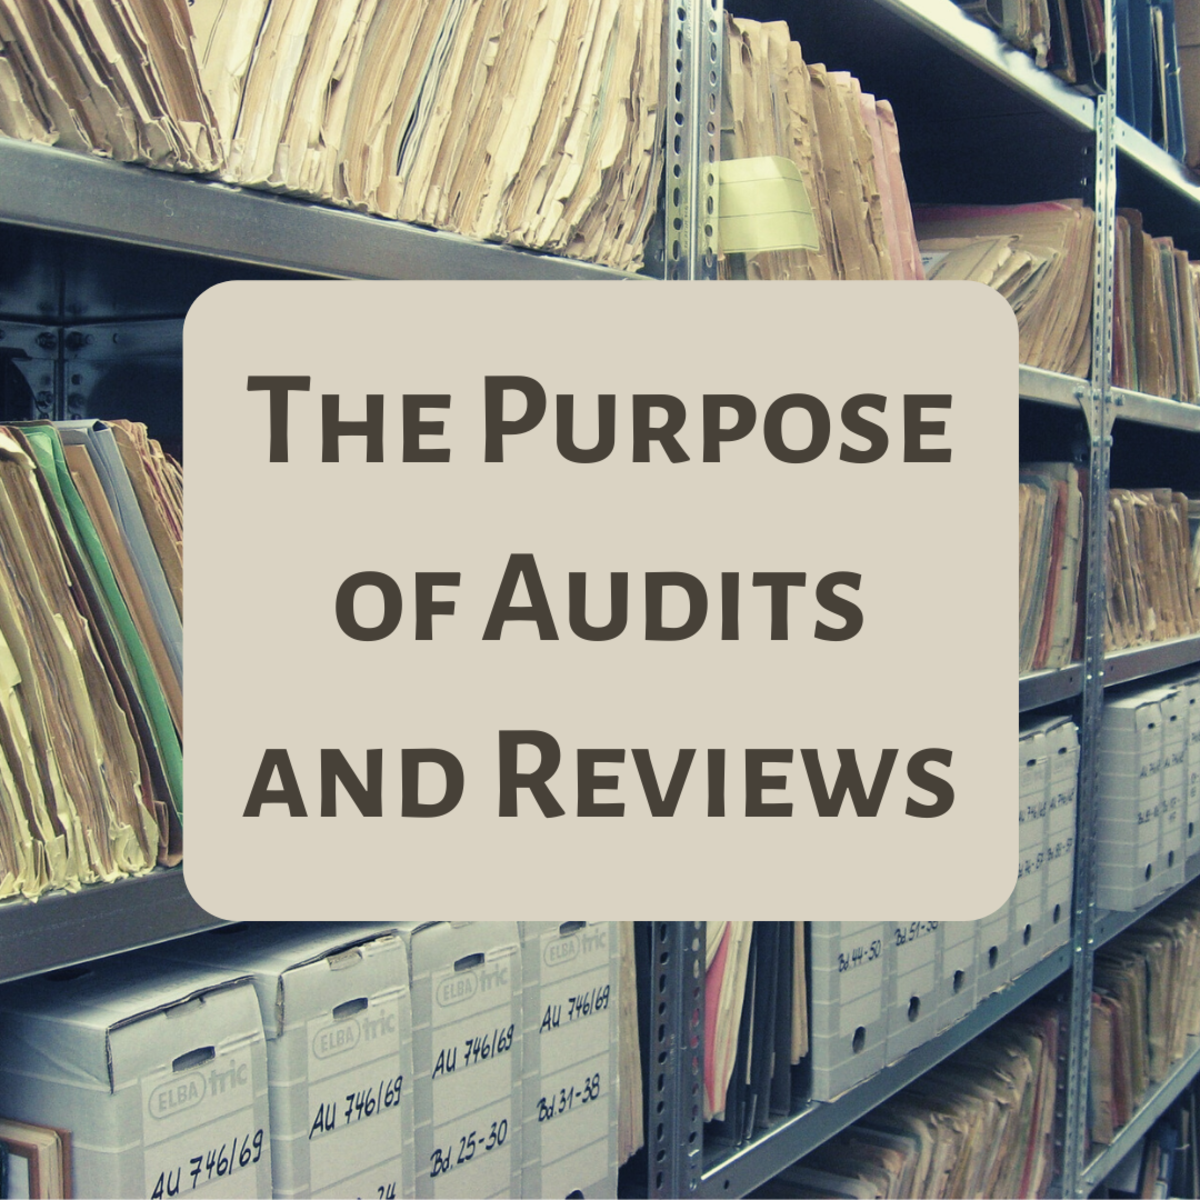 The Nature, Purpose and Scope of an Audit and Review